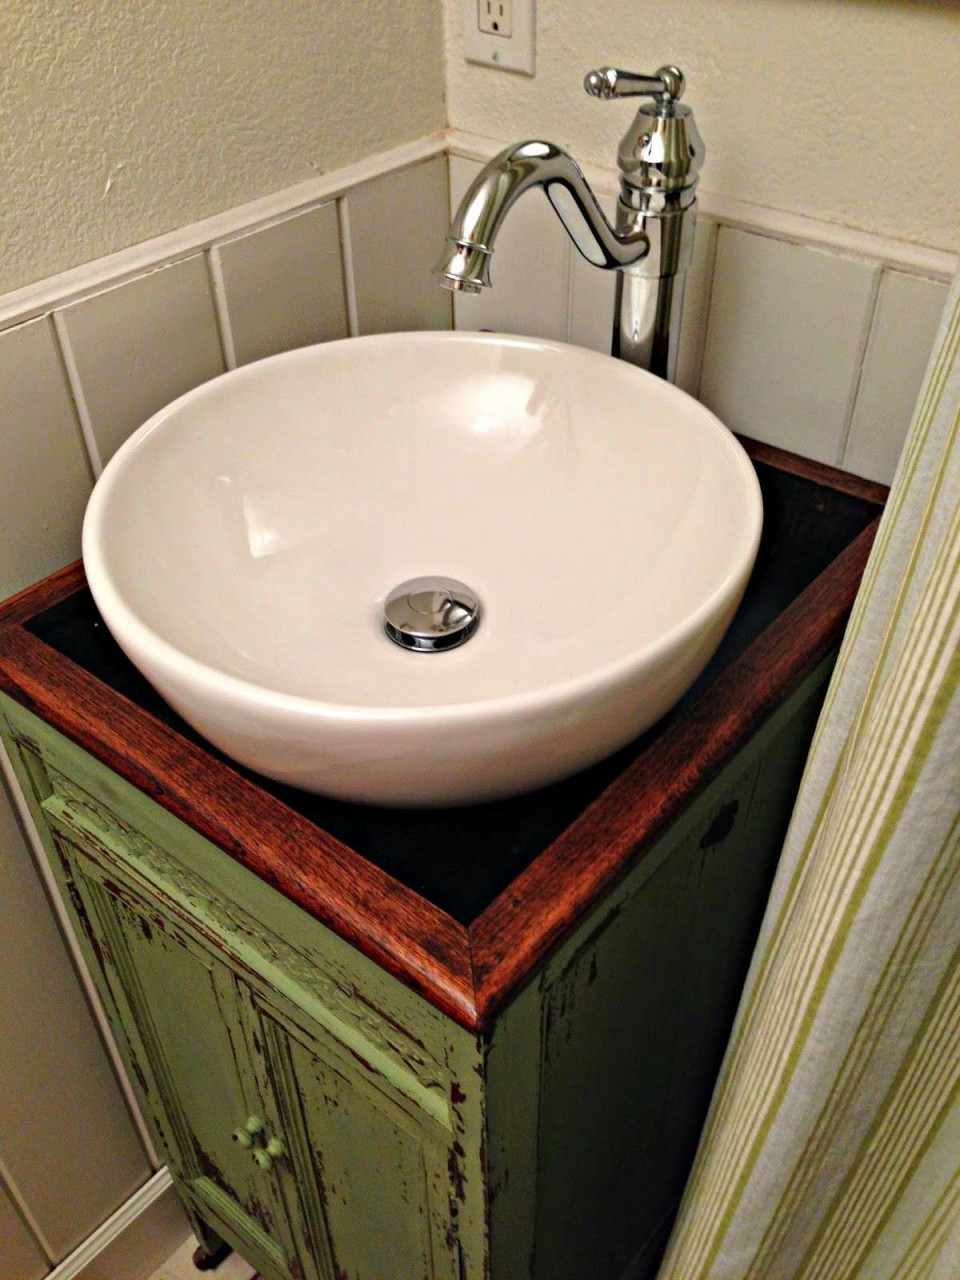 bathroom cabinets diy unique unique countertop ideas 2019 new bathroom countertop ideas menards of bathroom cabinets diy